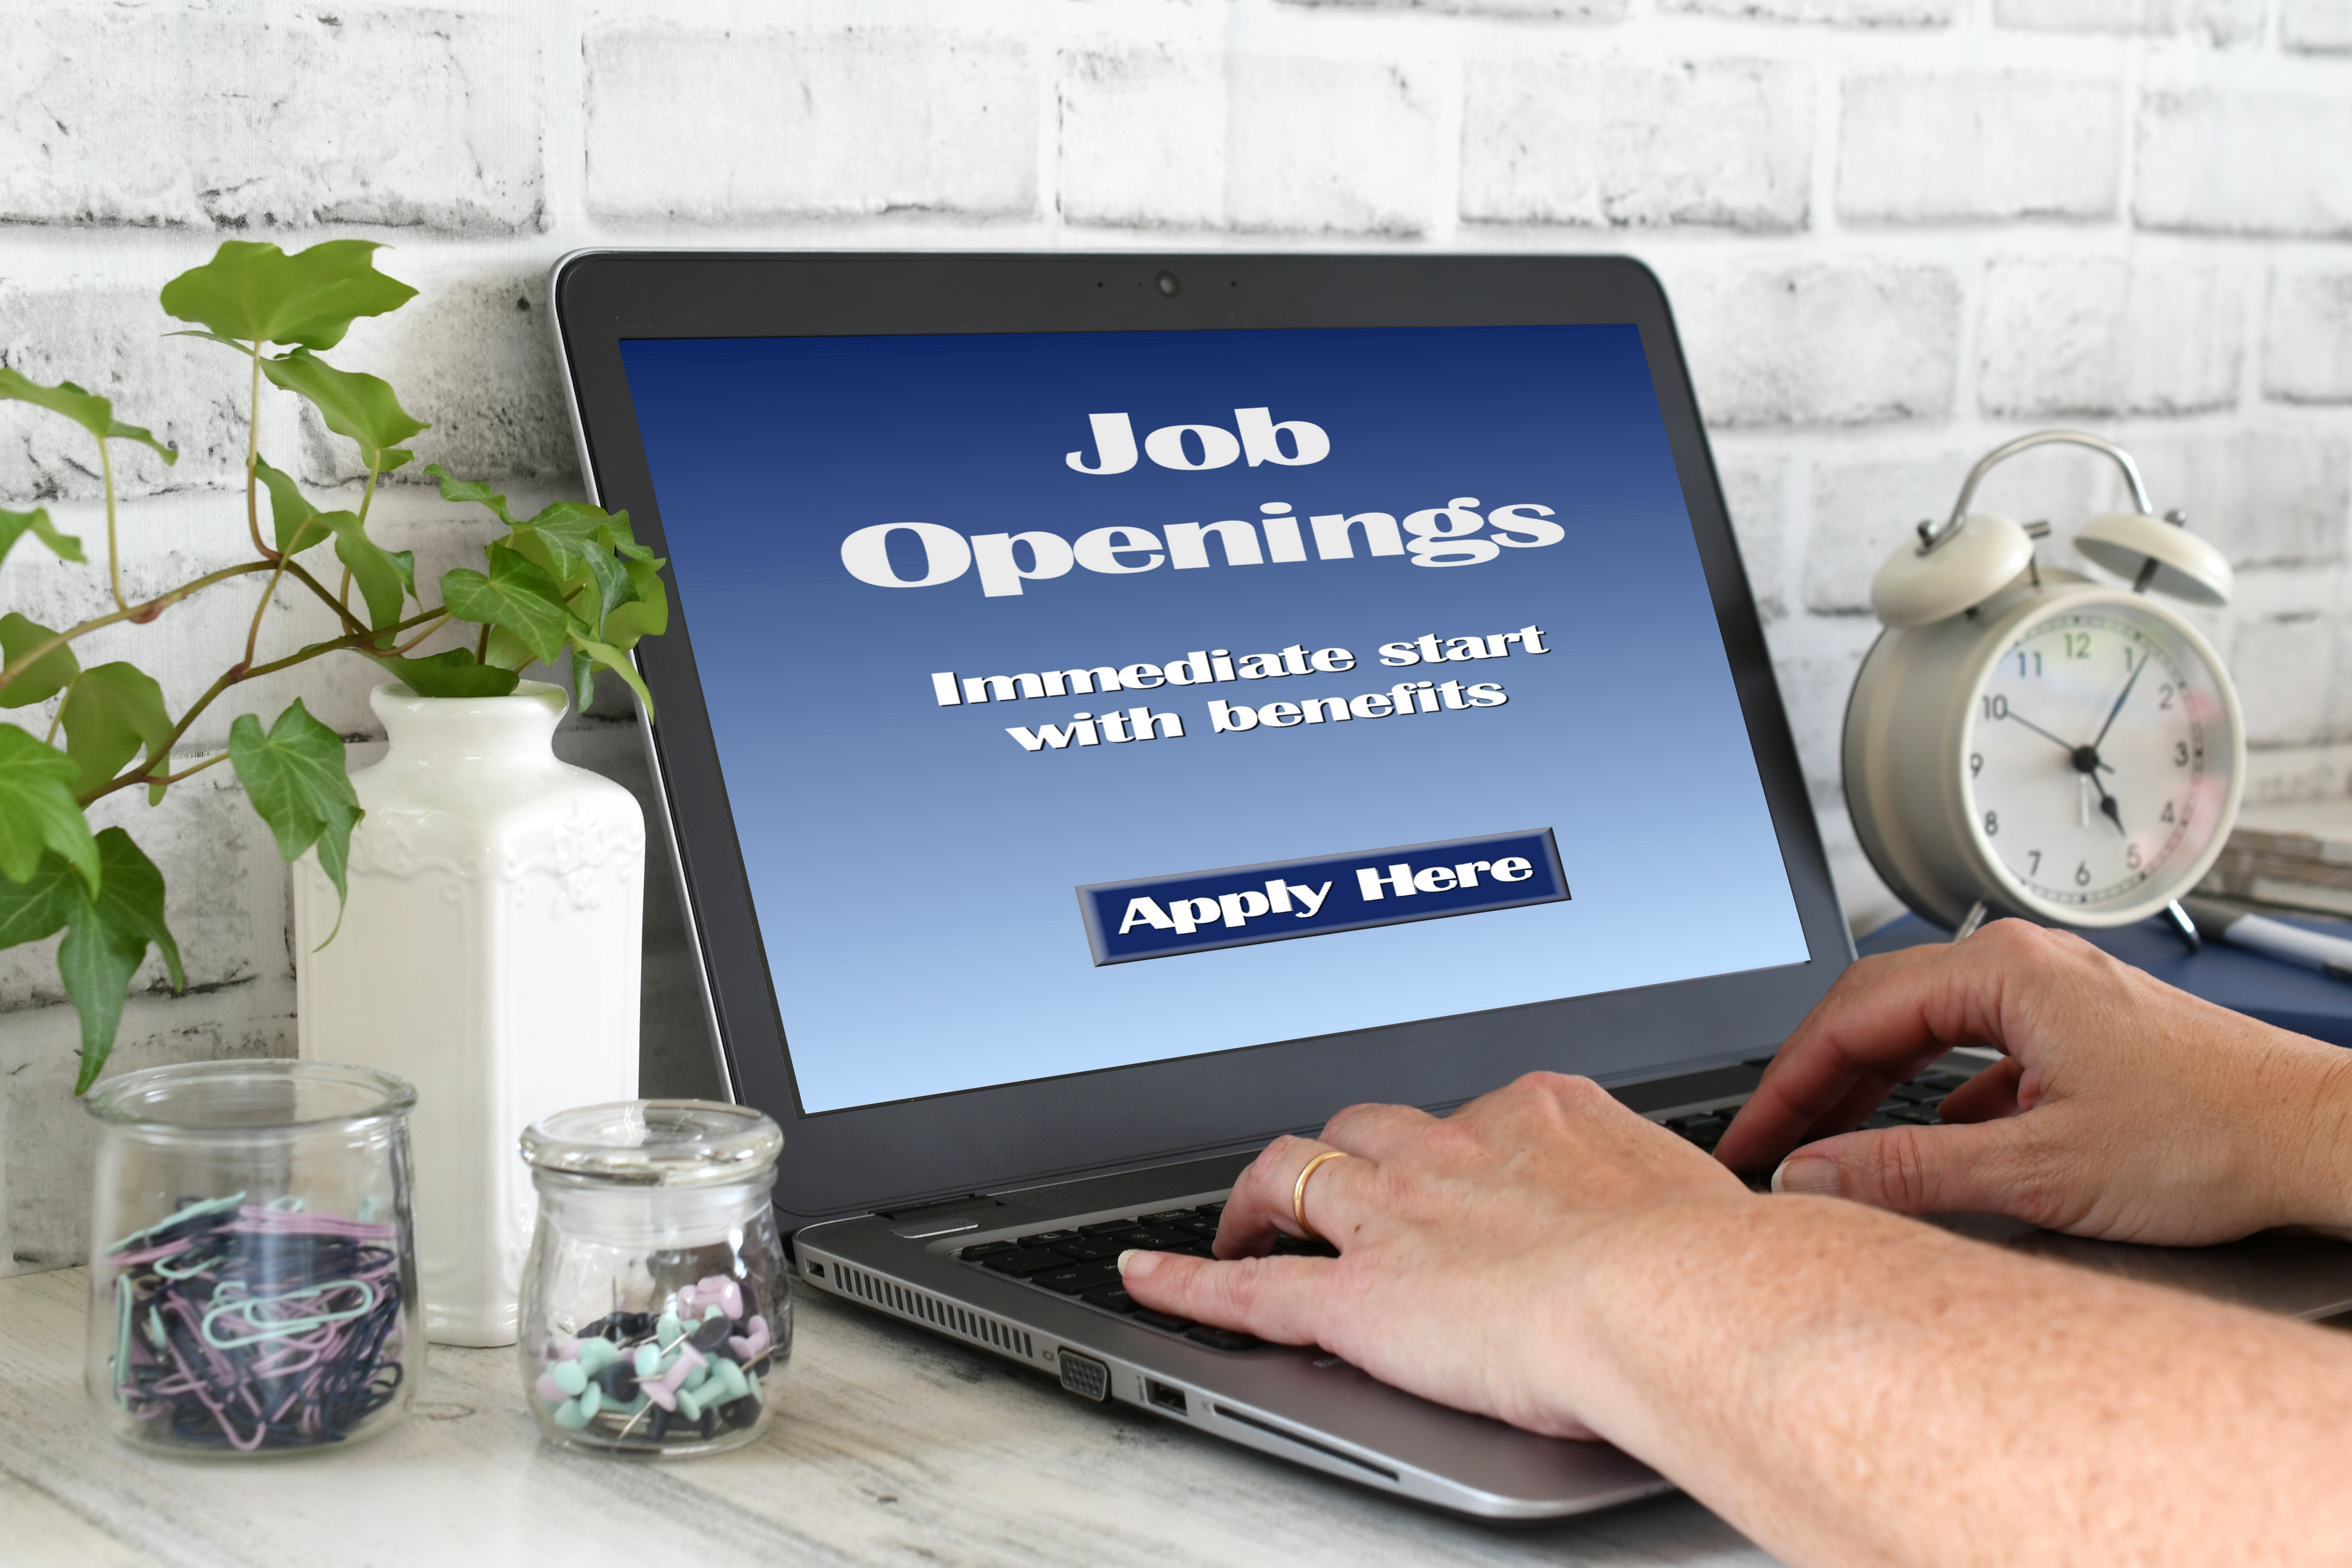 Using skills, interest assessments to aid in your job searching